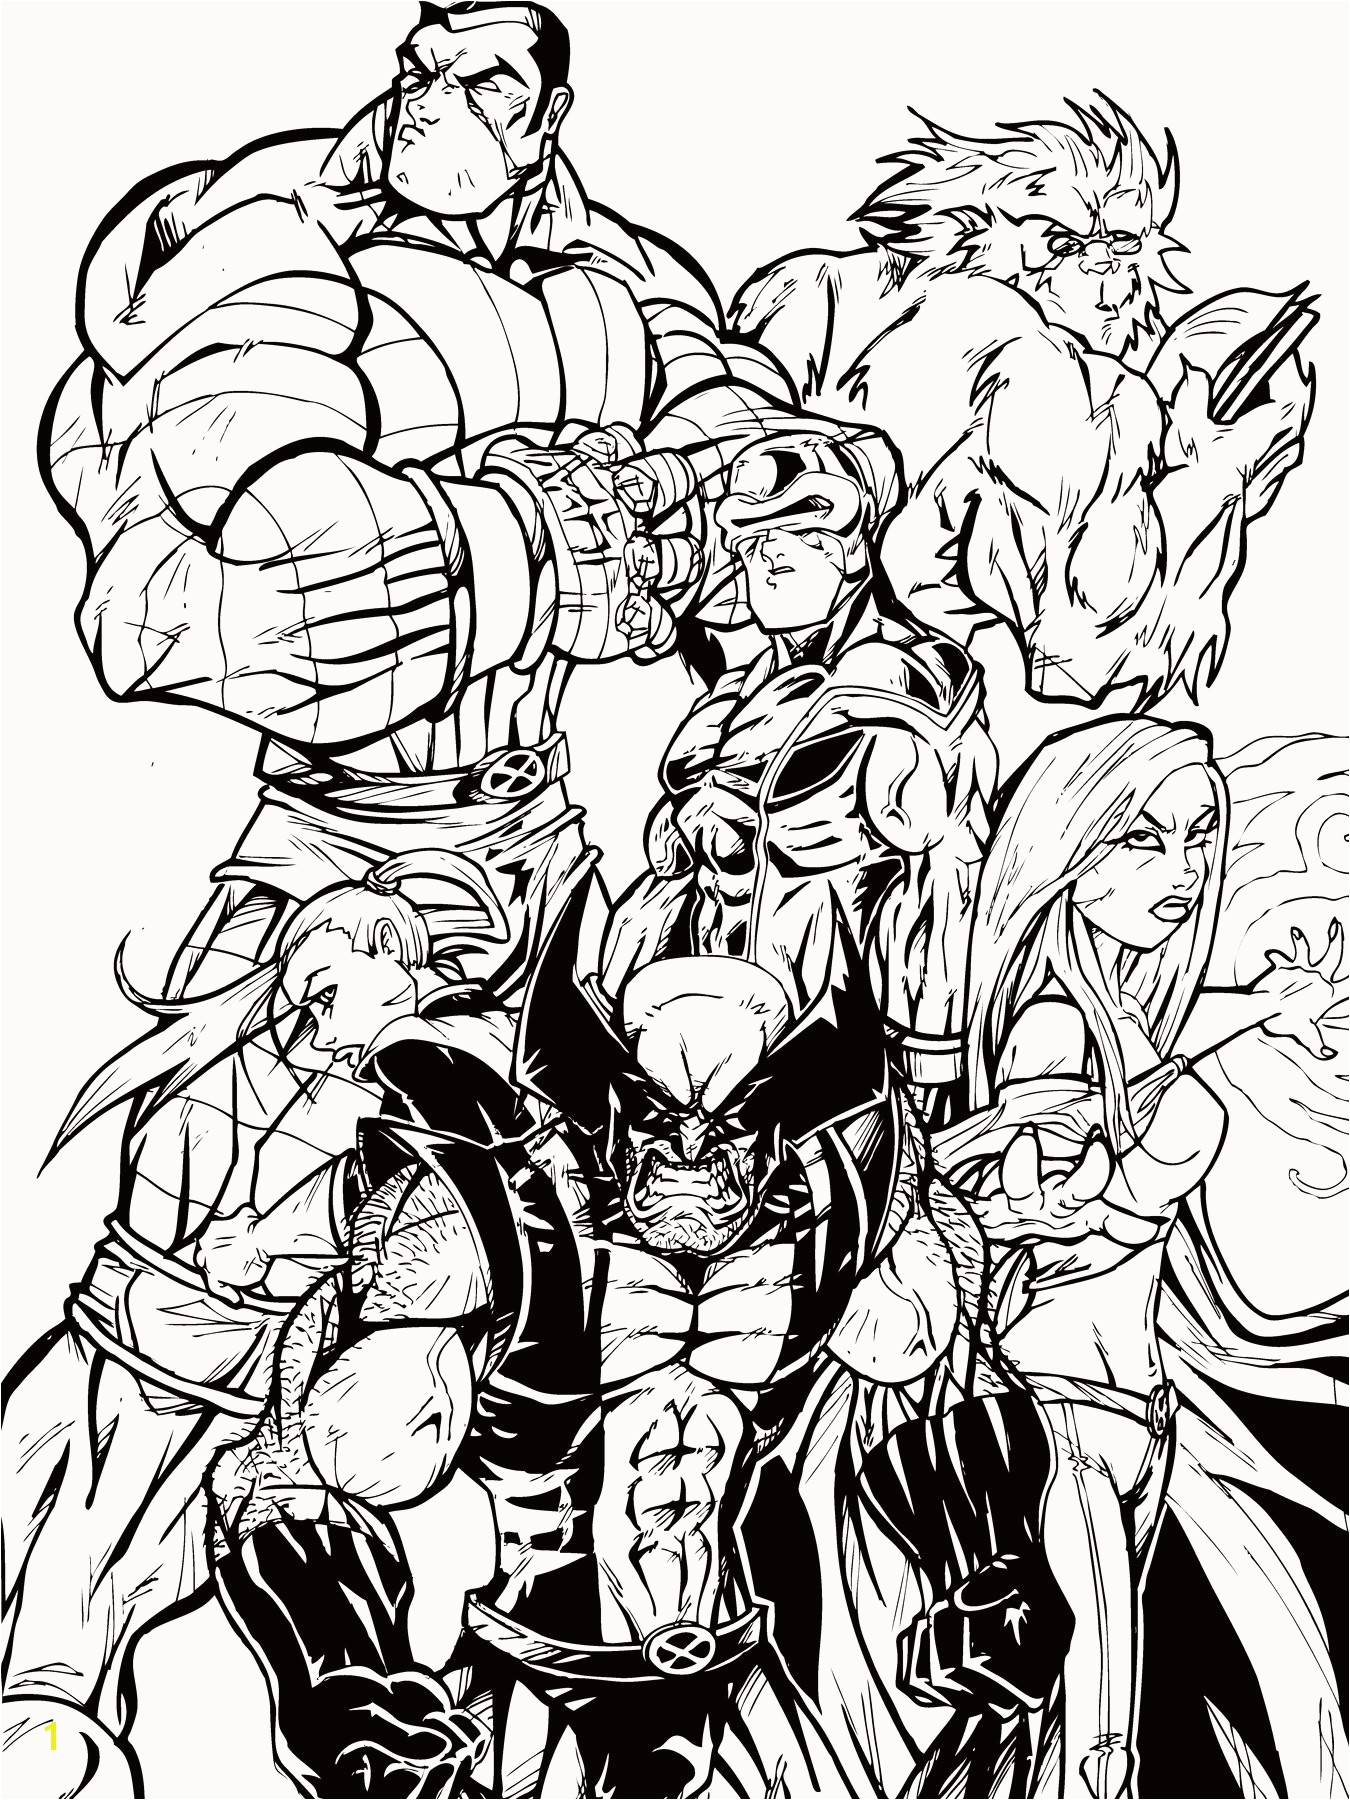 Super Hero Squad Coloring Pages Fresh Helpful Magneto Coloring Pages Marvel Super He Unknown Super